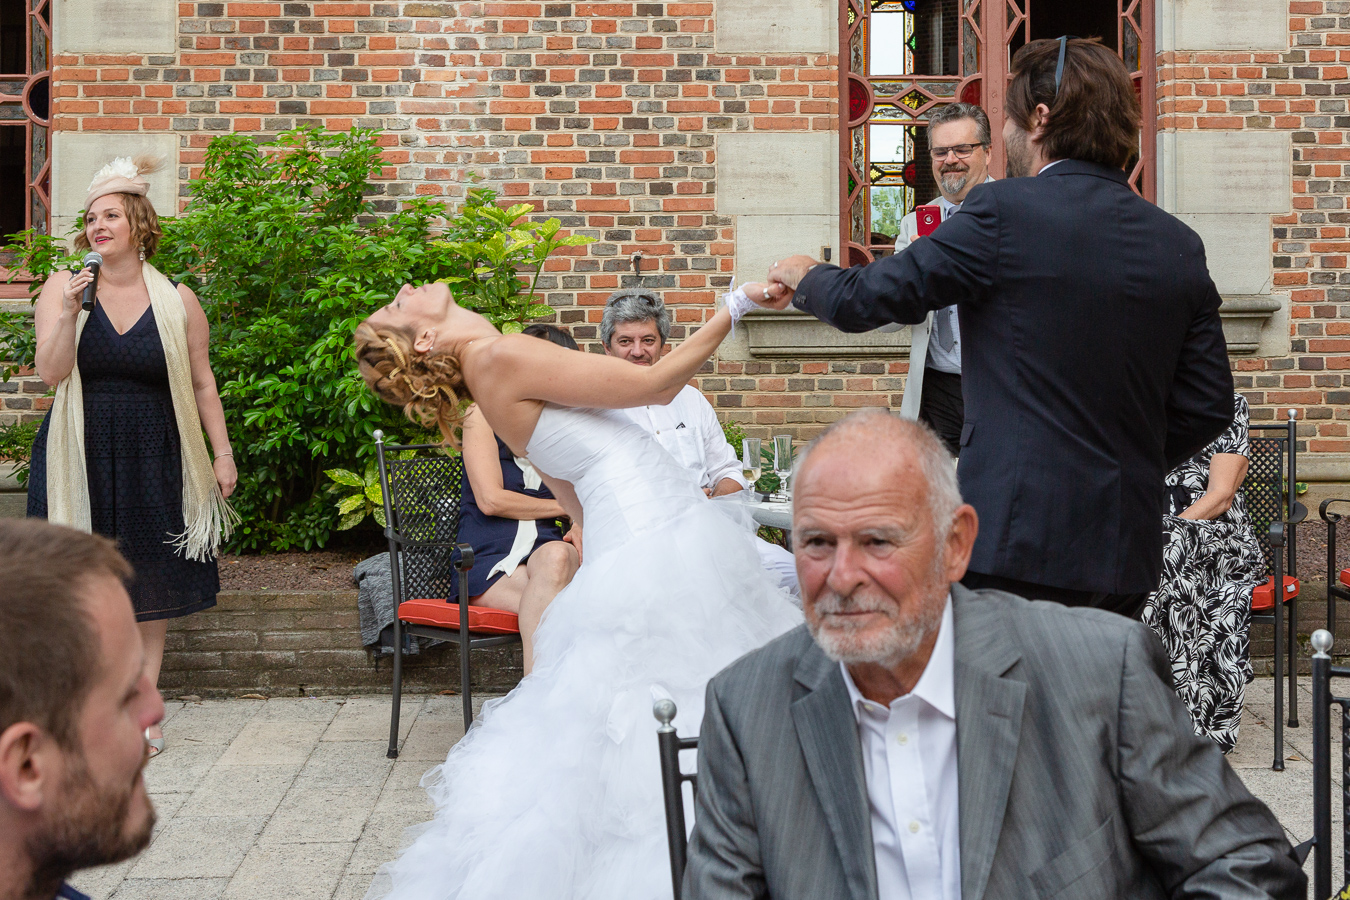 The bride strikes a pose during the entrance waltz with the groom during their Wedding Party Chateau de Maulmont near Vichy, France.